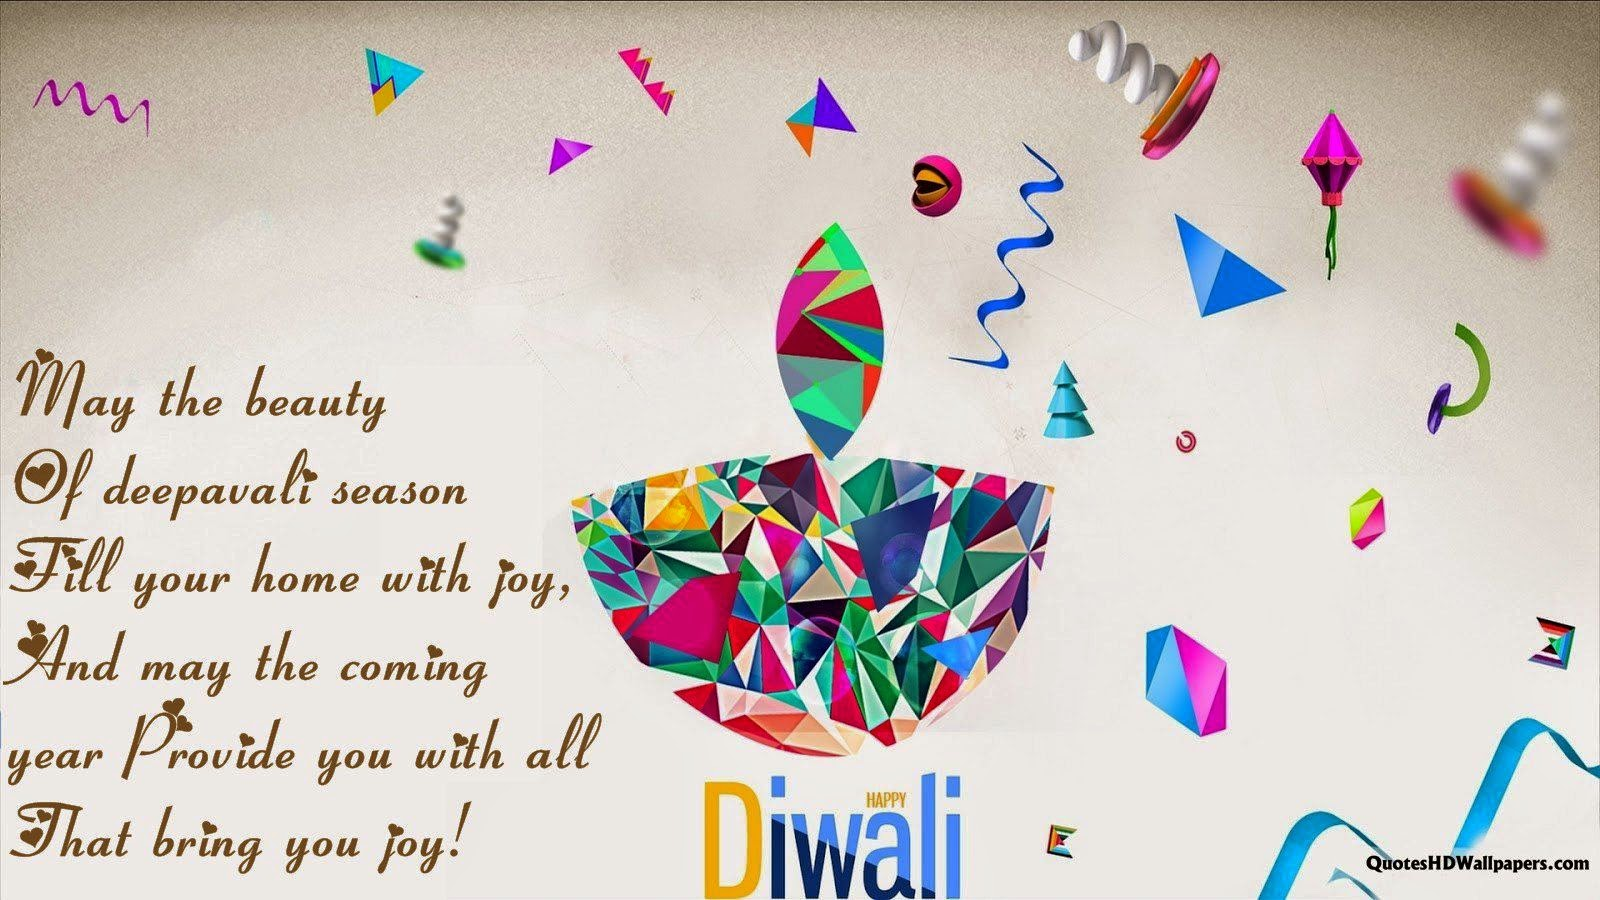 Happy Diwali Facebook & WhatsApp Quotes 2015